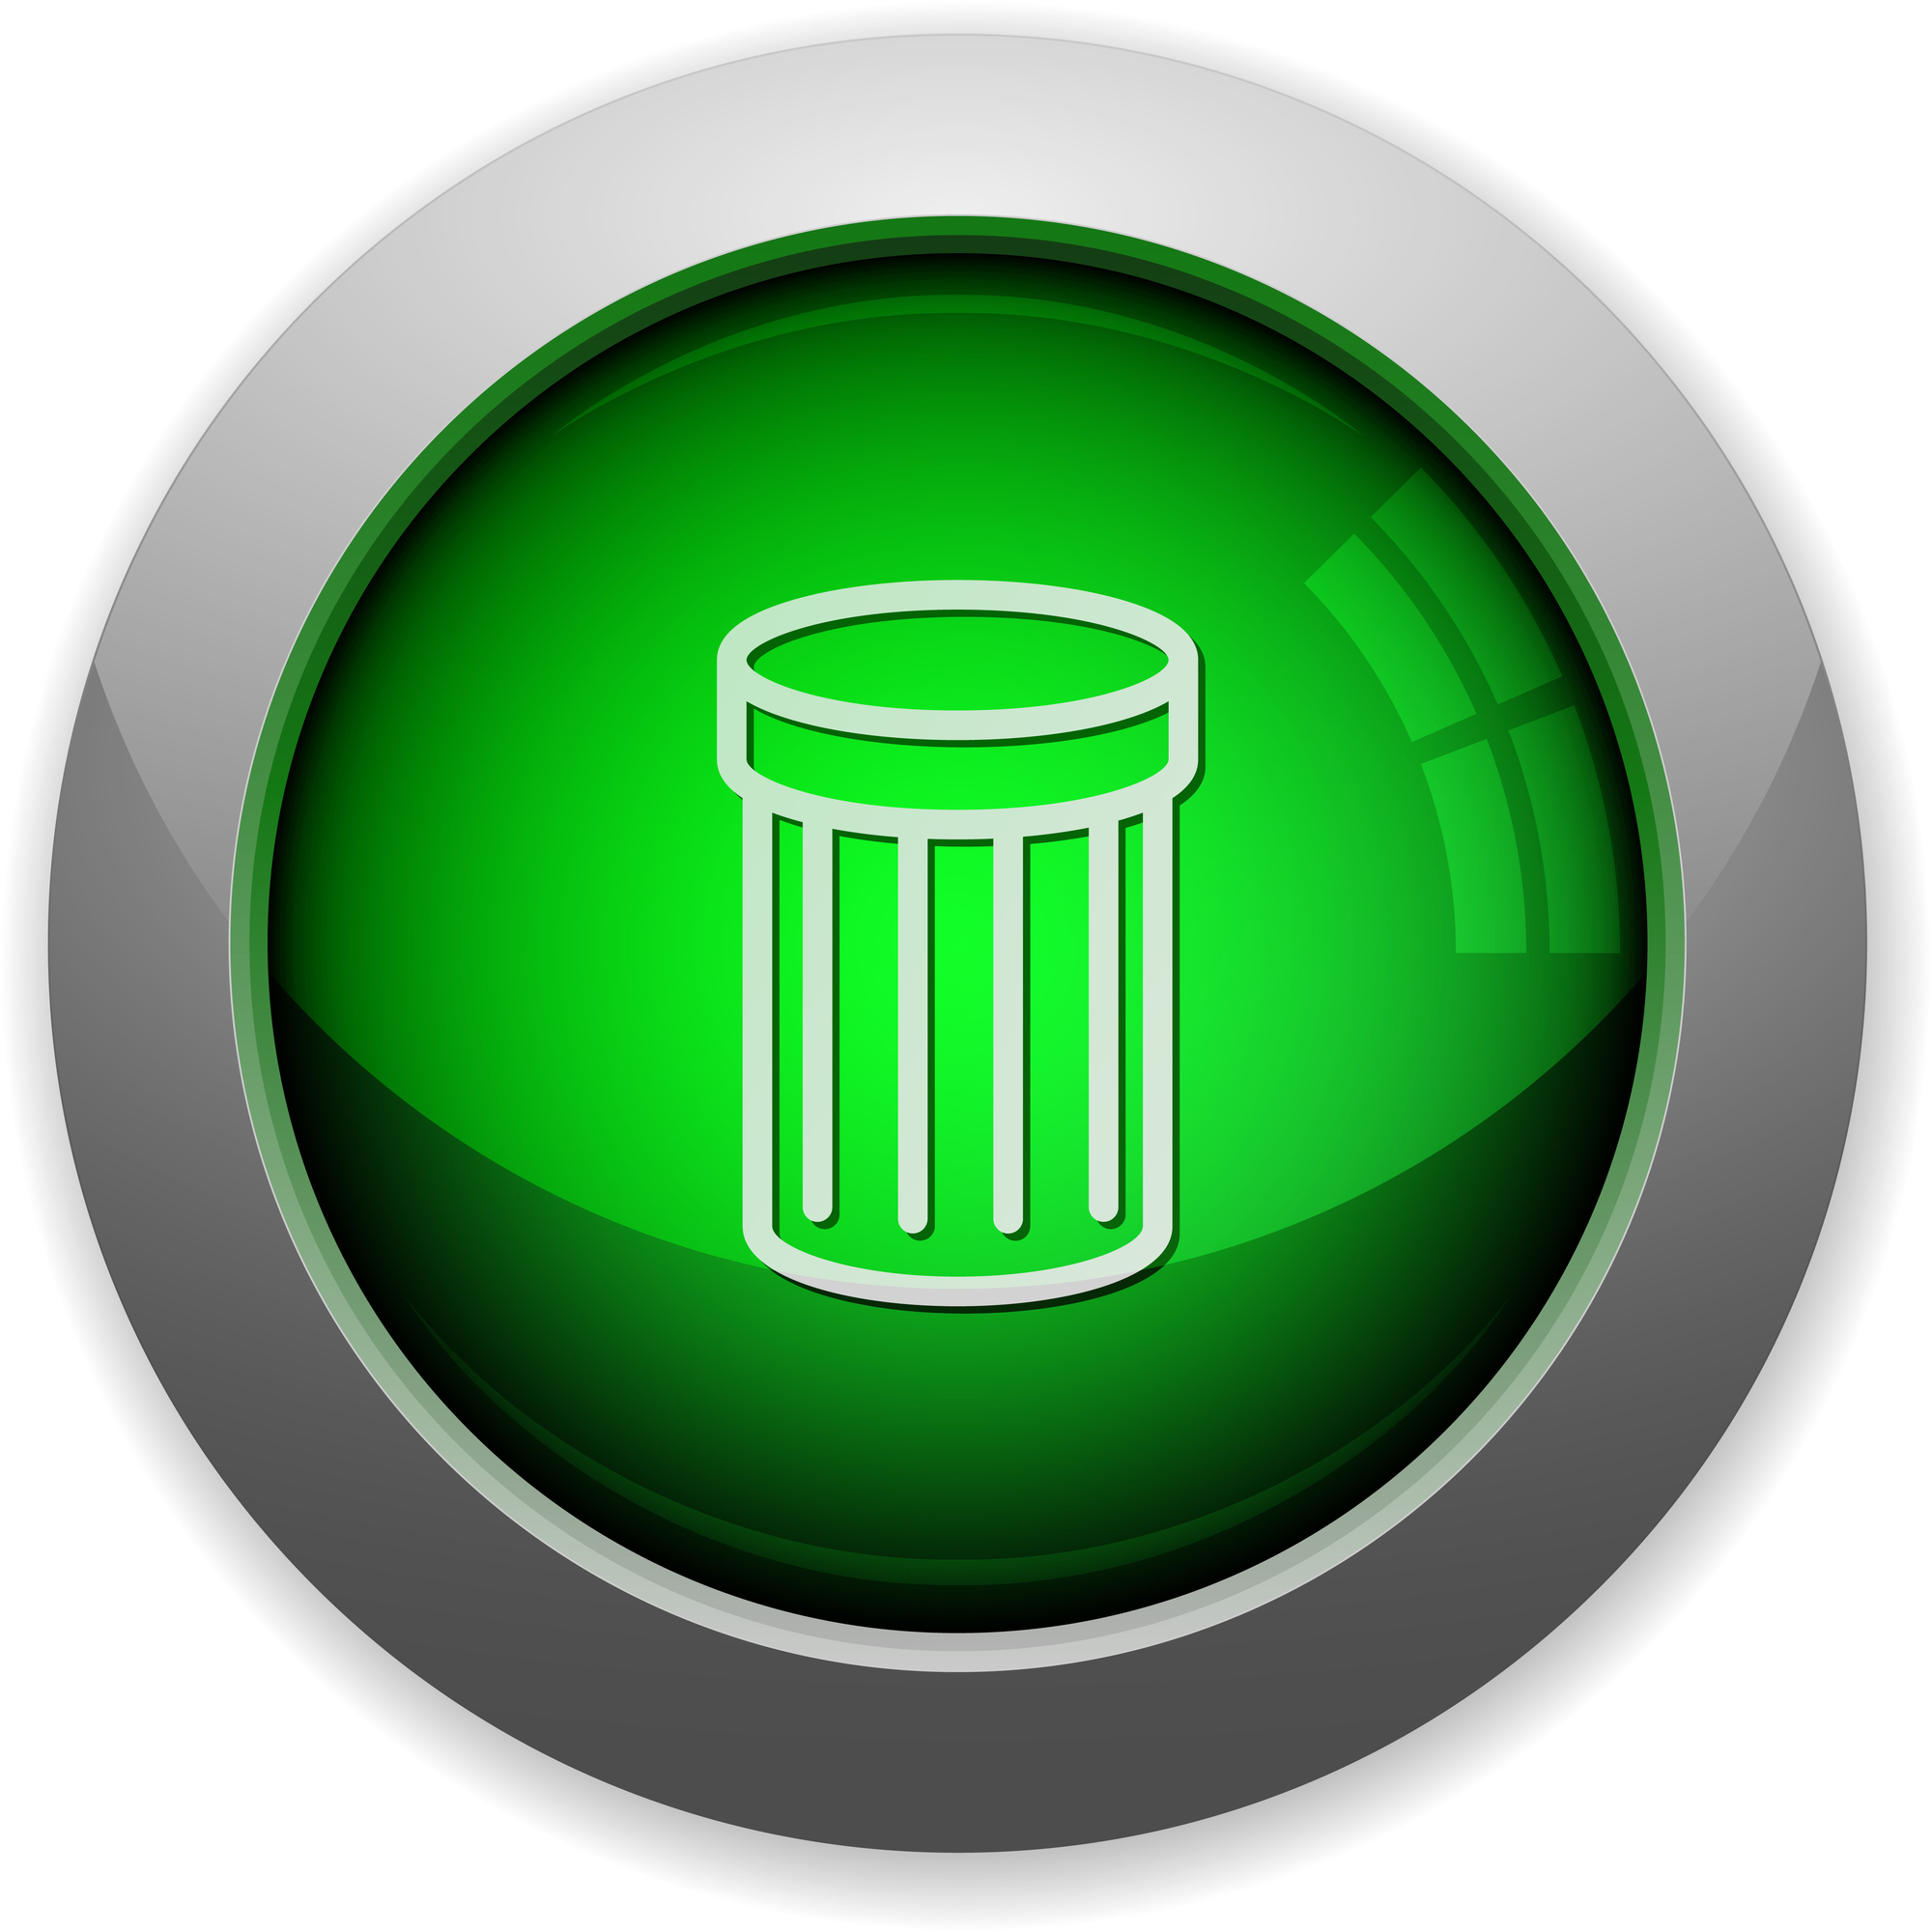 7 Things DBAs Must Know About The Recycle Bin